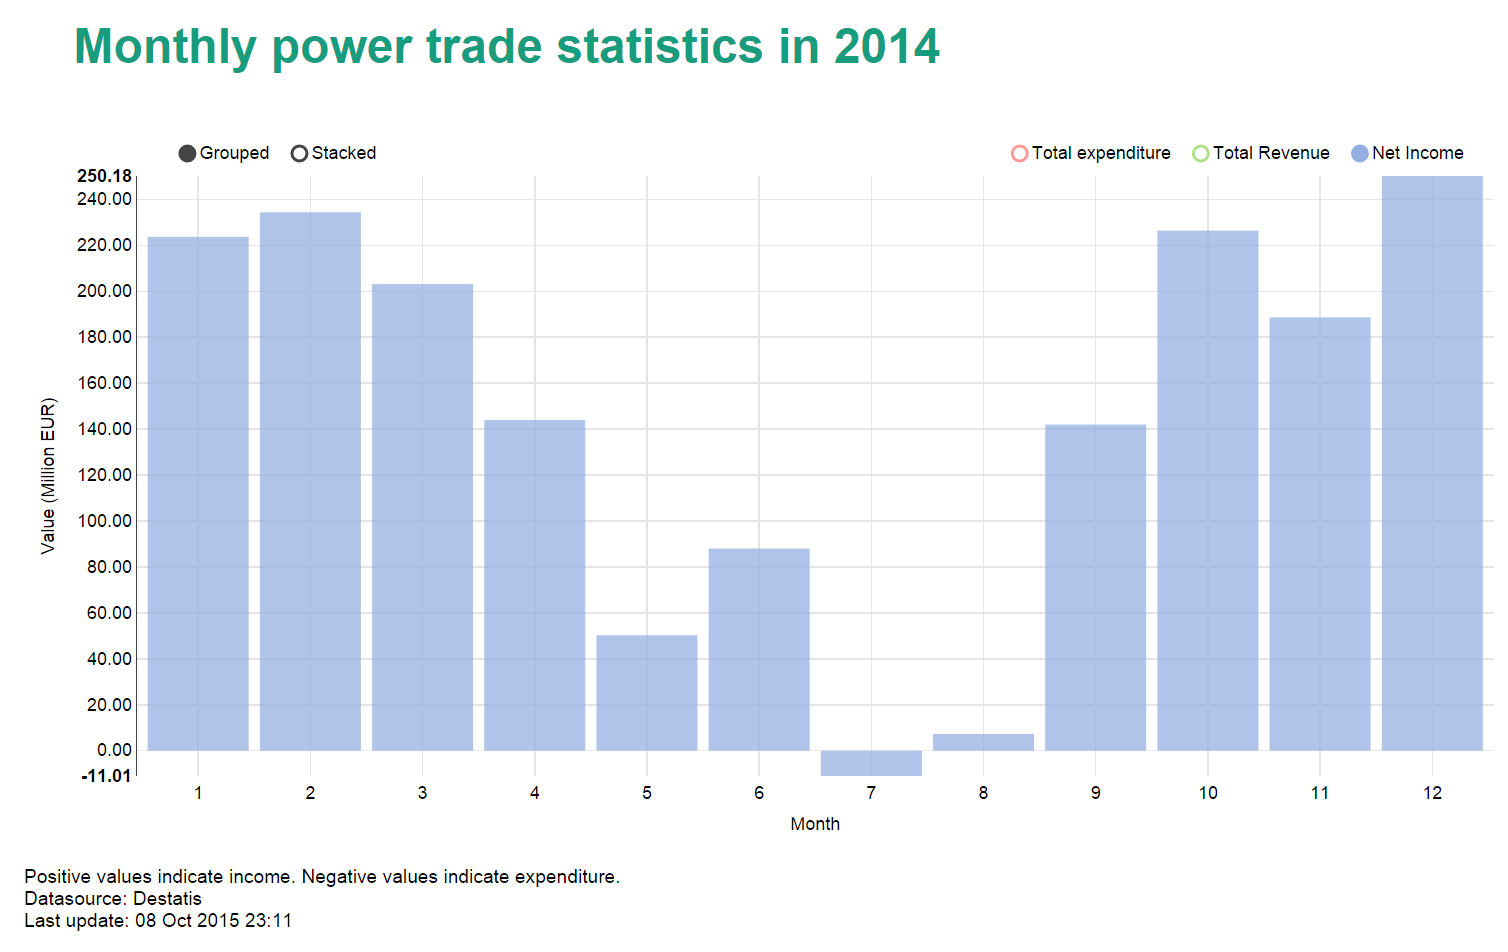 German power trade (import/export) in 2014